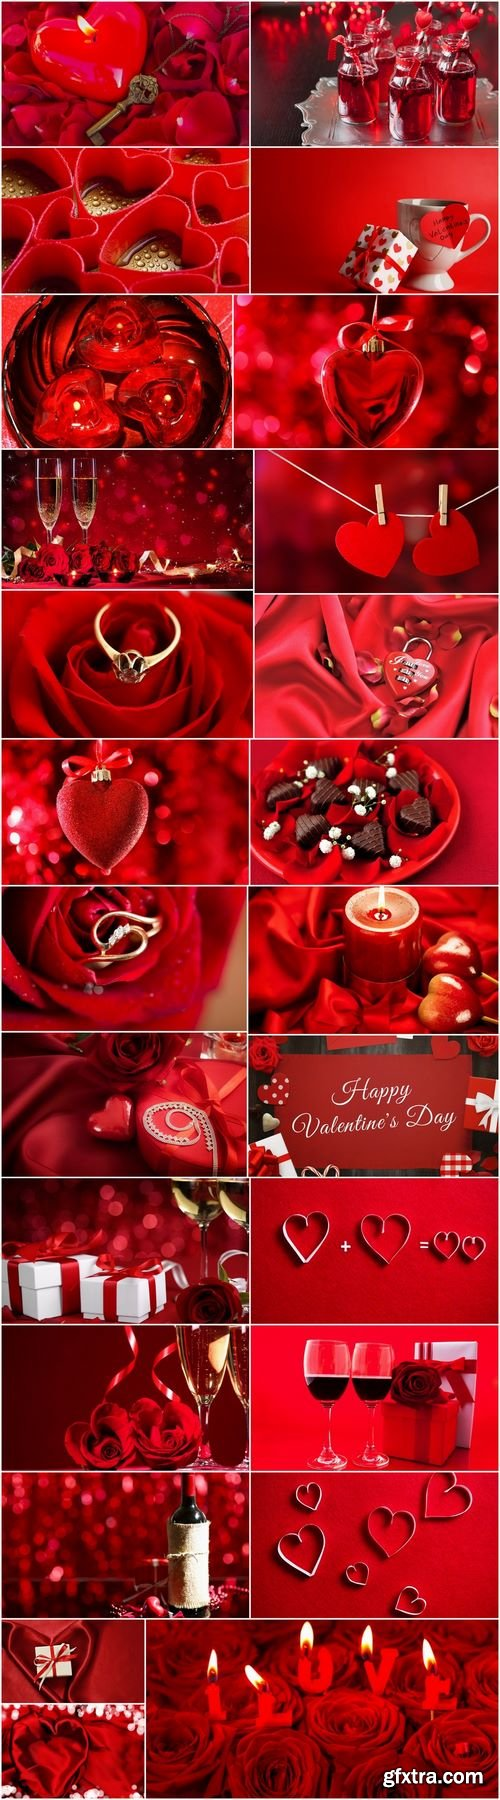 Valentines Day gift heart still life illustration holiday 2-25 HQ Jpeg